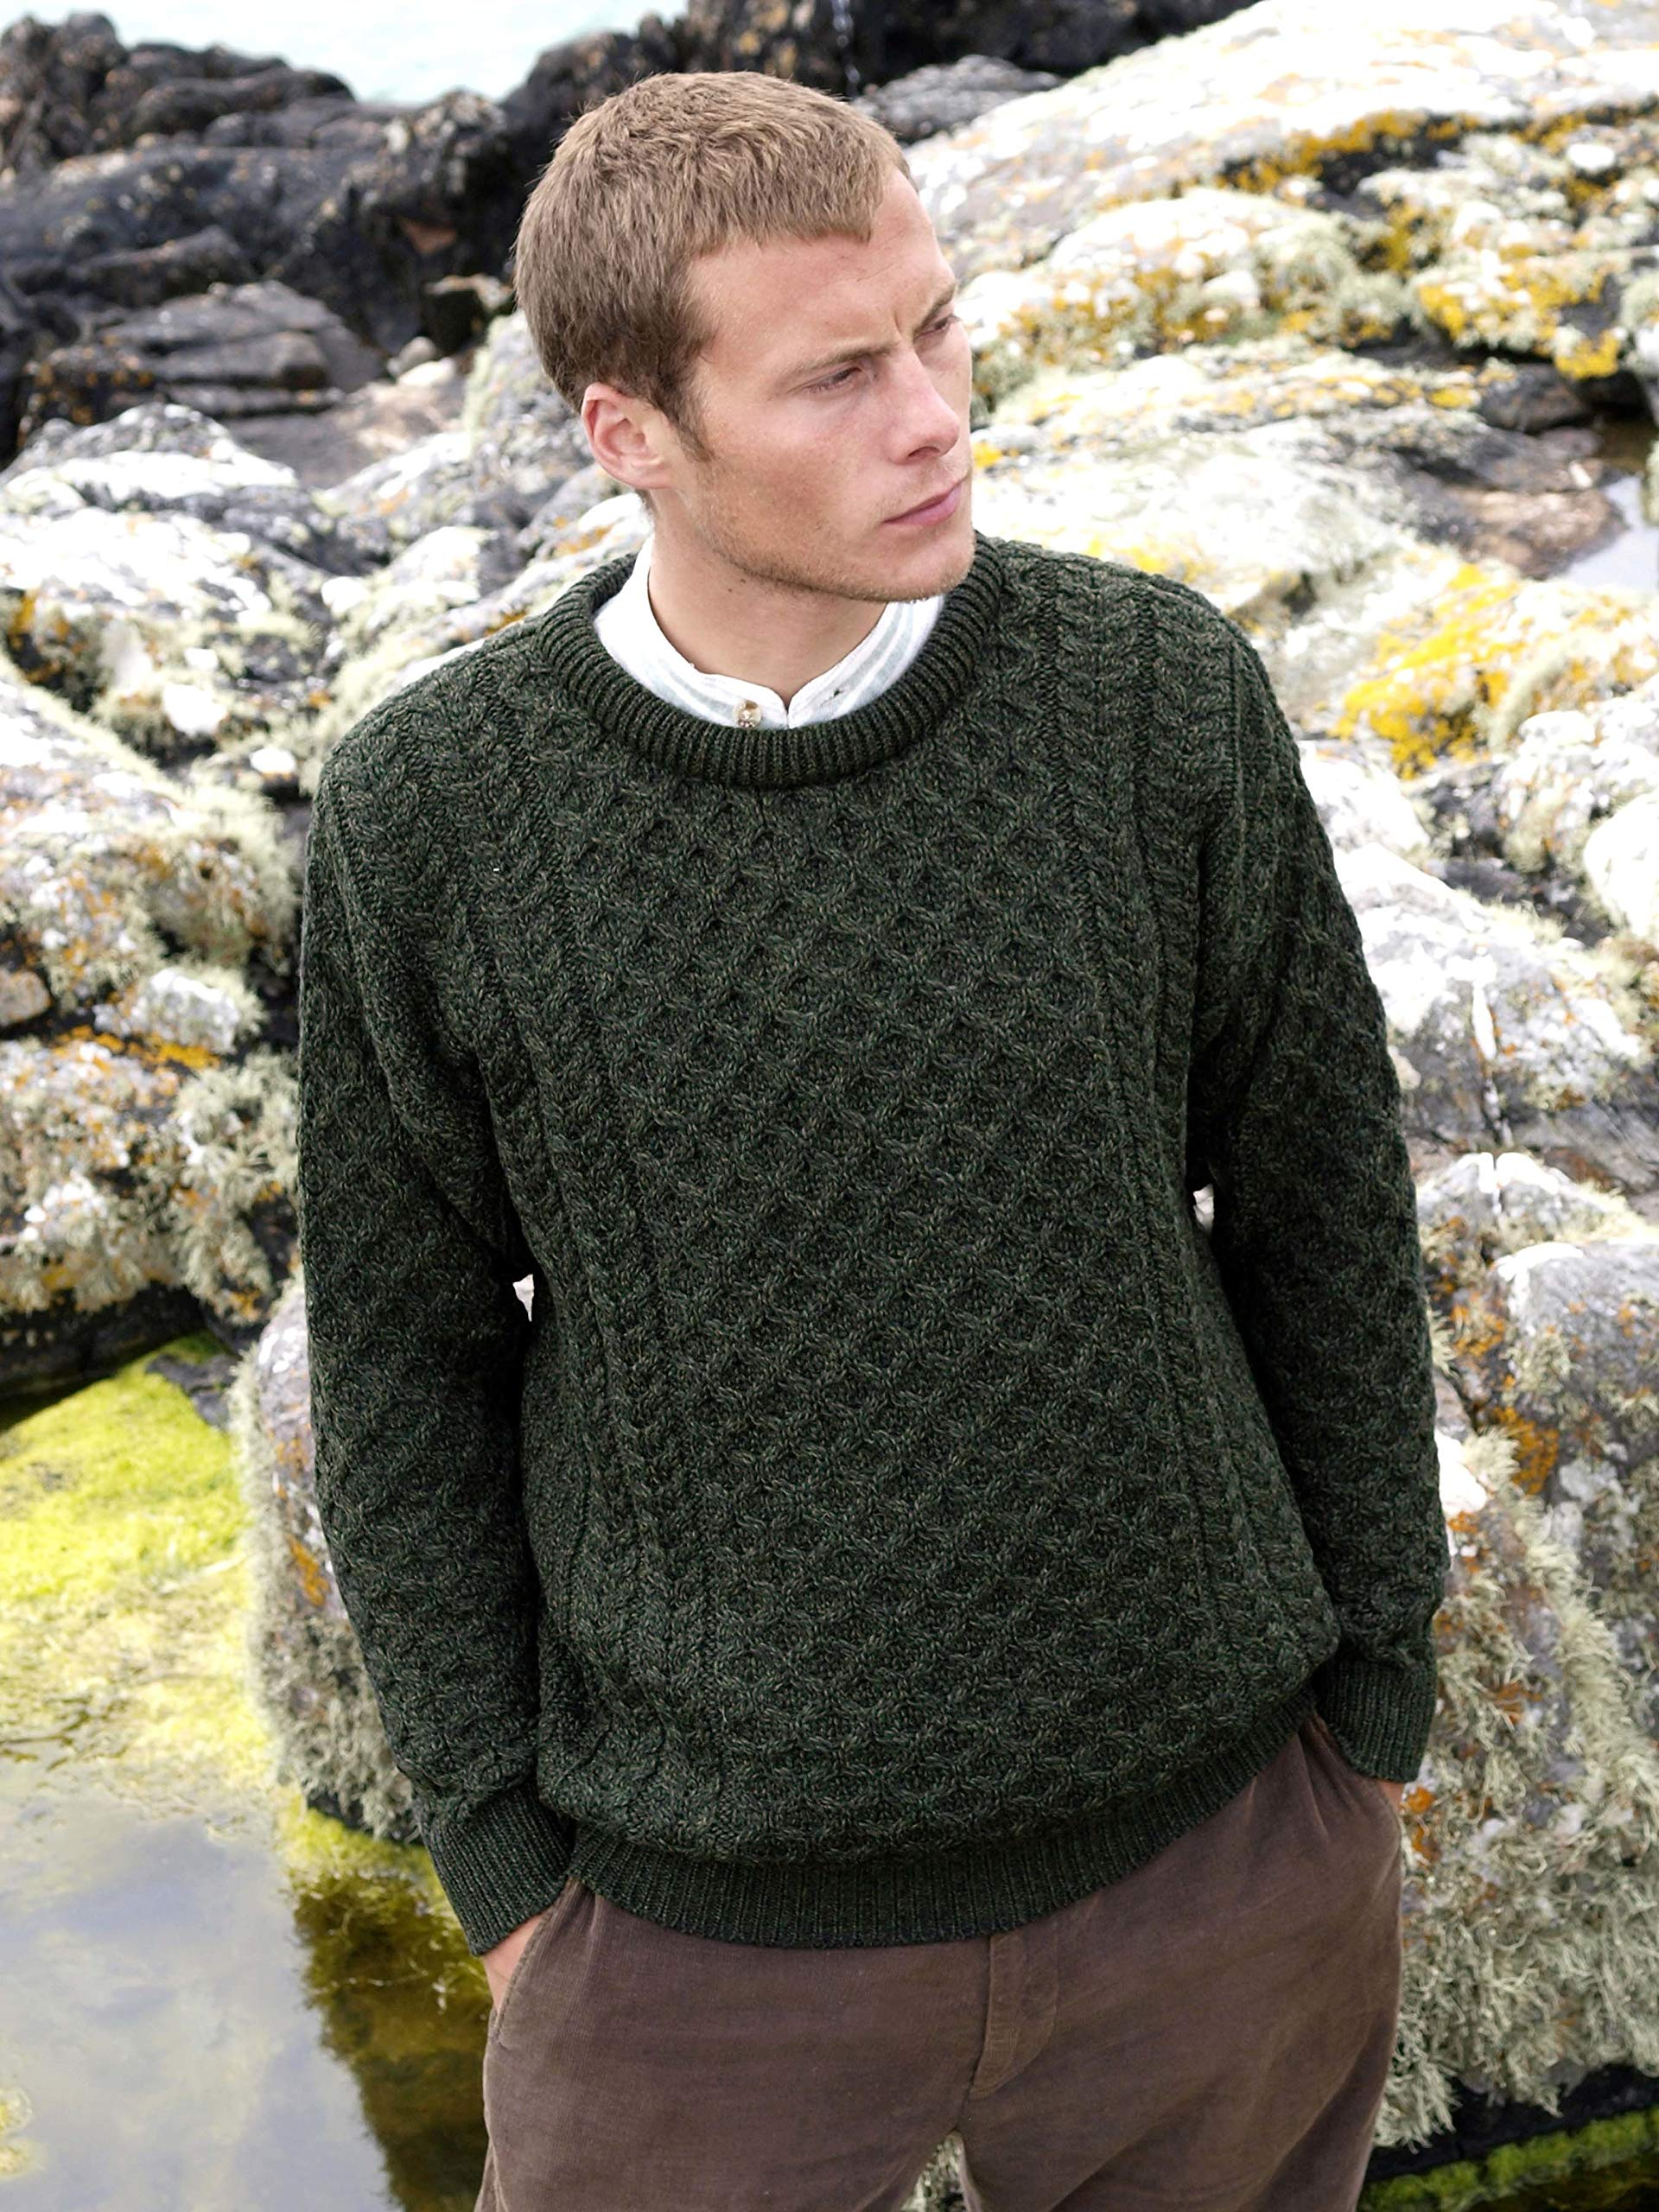 100% Soft Irish Merino Wool Crew Neck Sweater by West End Knitwear,Green,X Large